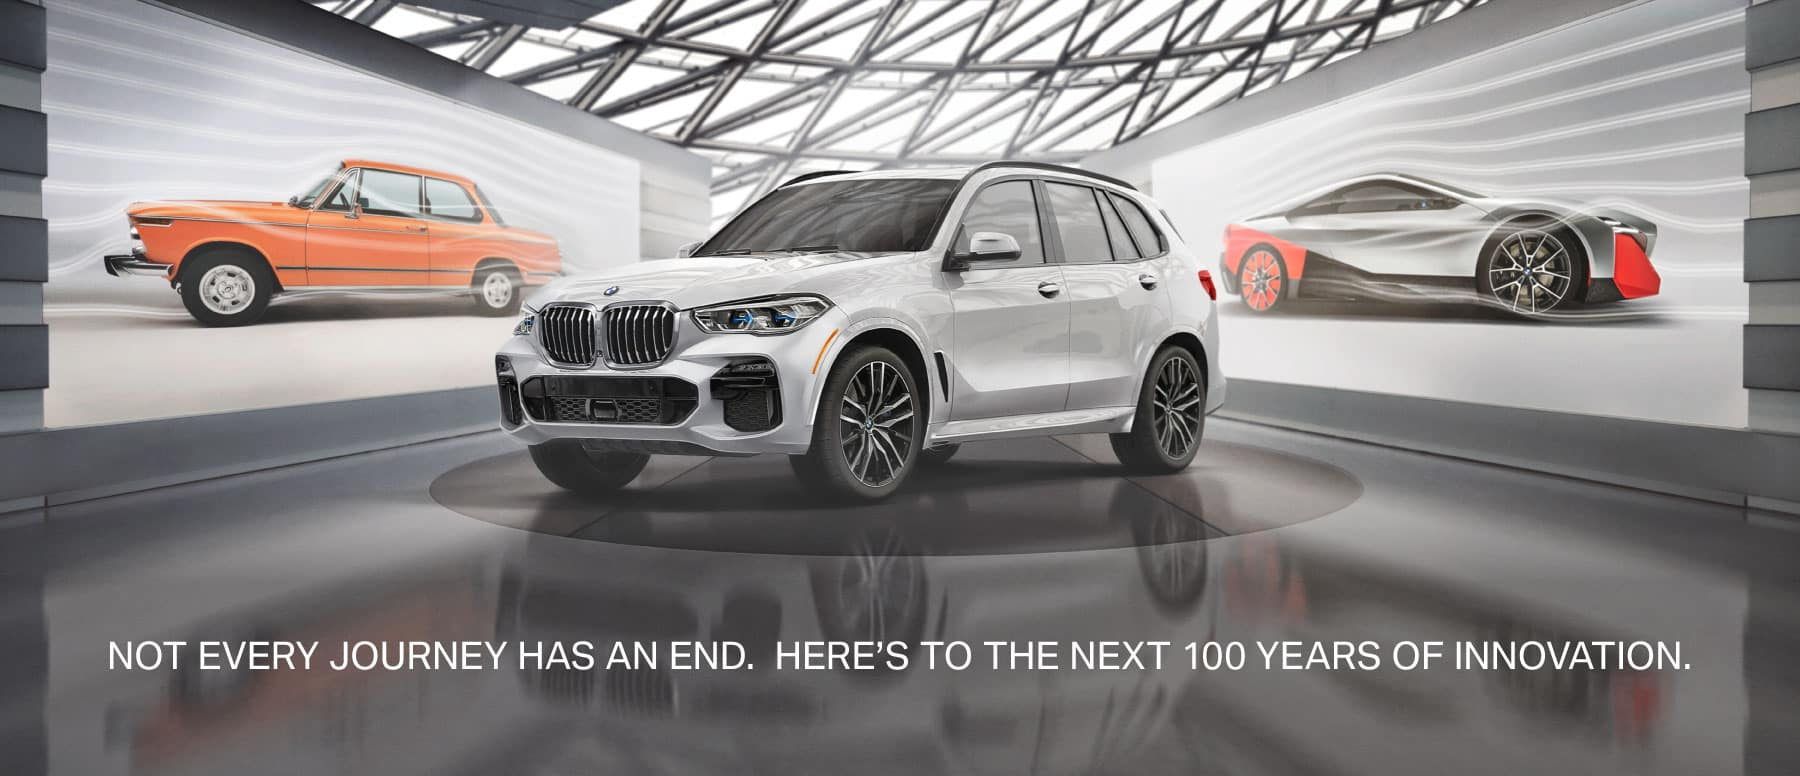 Welcome to Autobahn BMW Fort Worth | Happy New Year! Hope you have a great 2020!